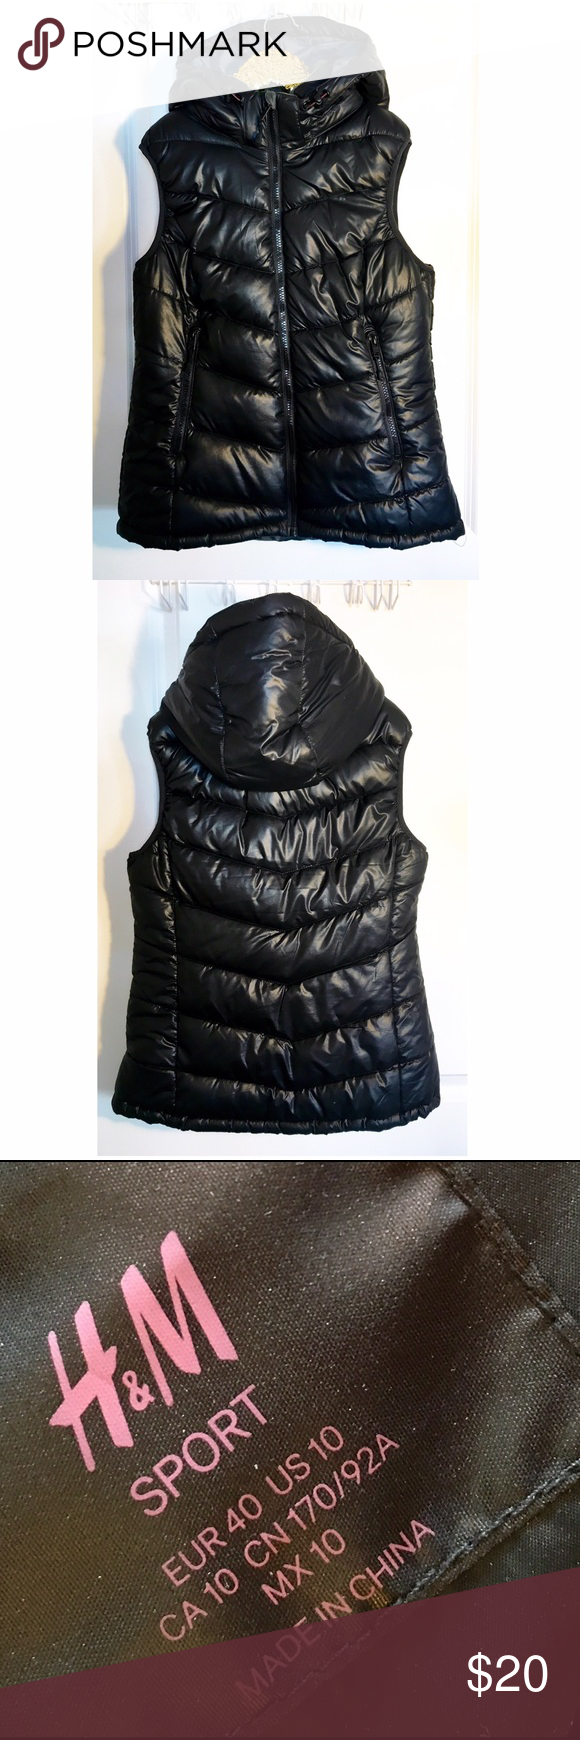 H&M black quilted vest Worn once, size 10 puffy vest. I wore is loose so I could fit sweaters under it in the winter. Looks cute layered or as a tight fit too! No flaws H&M Jackets & Coats Vests